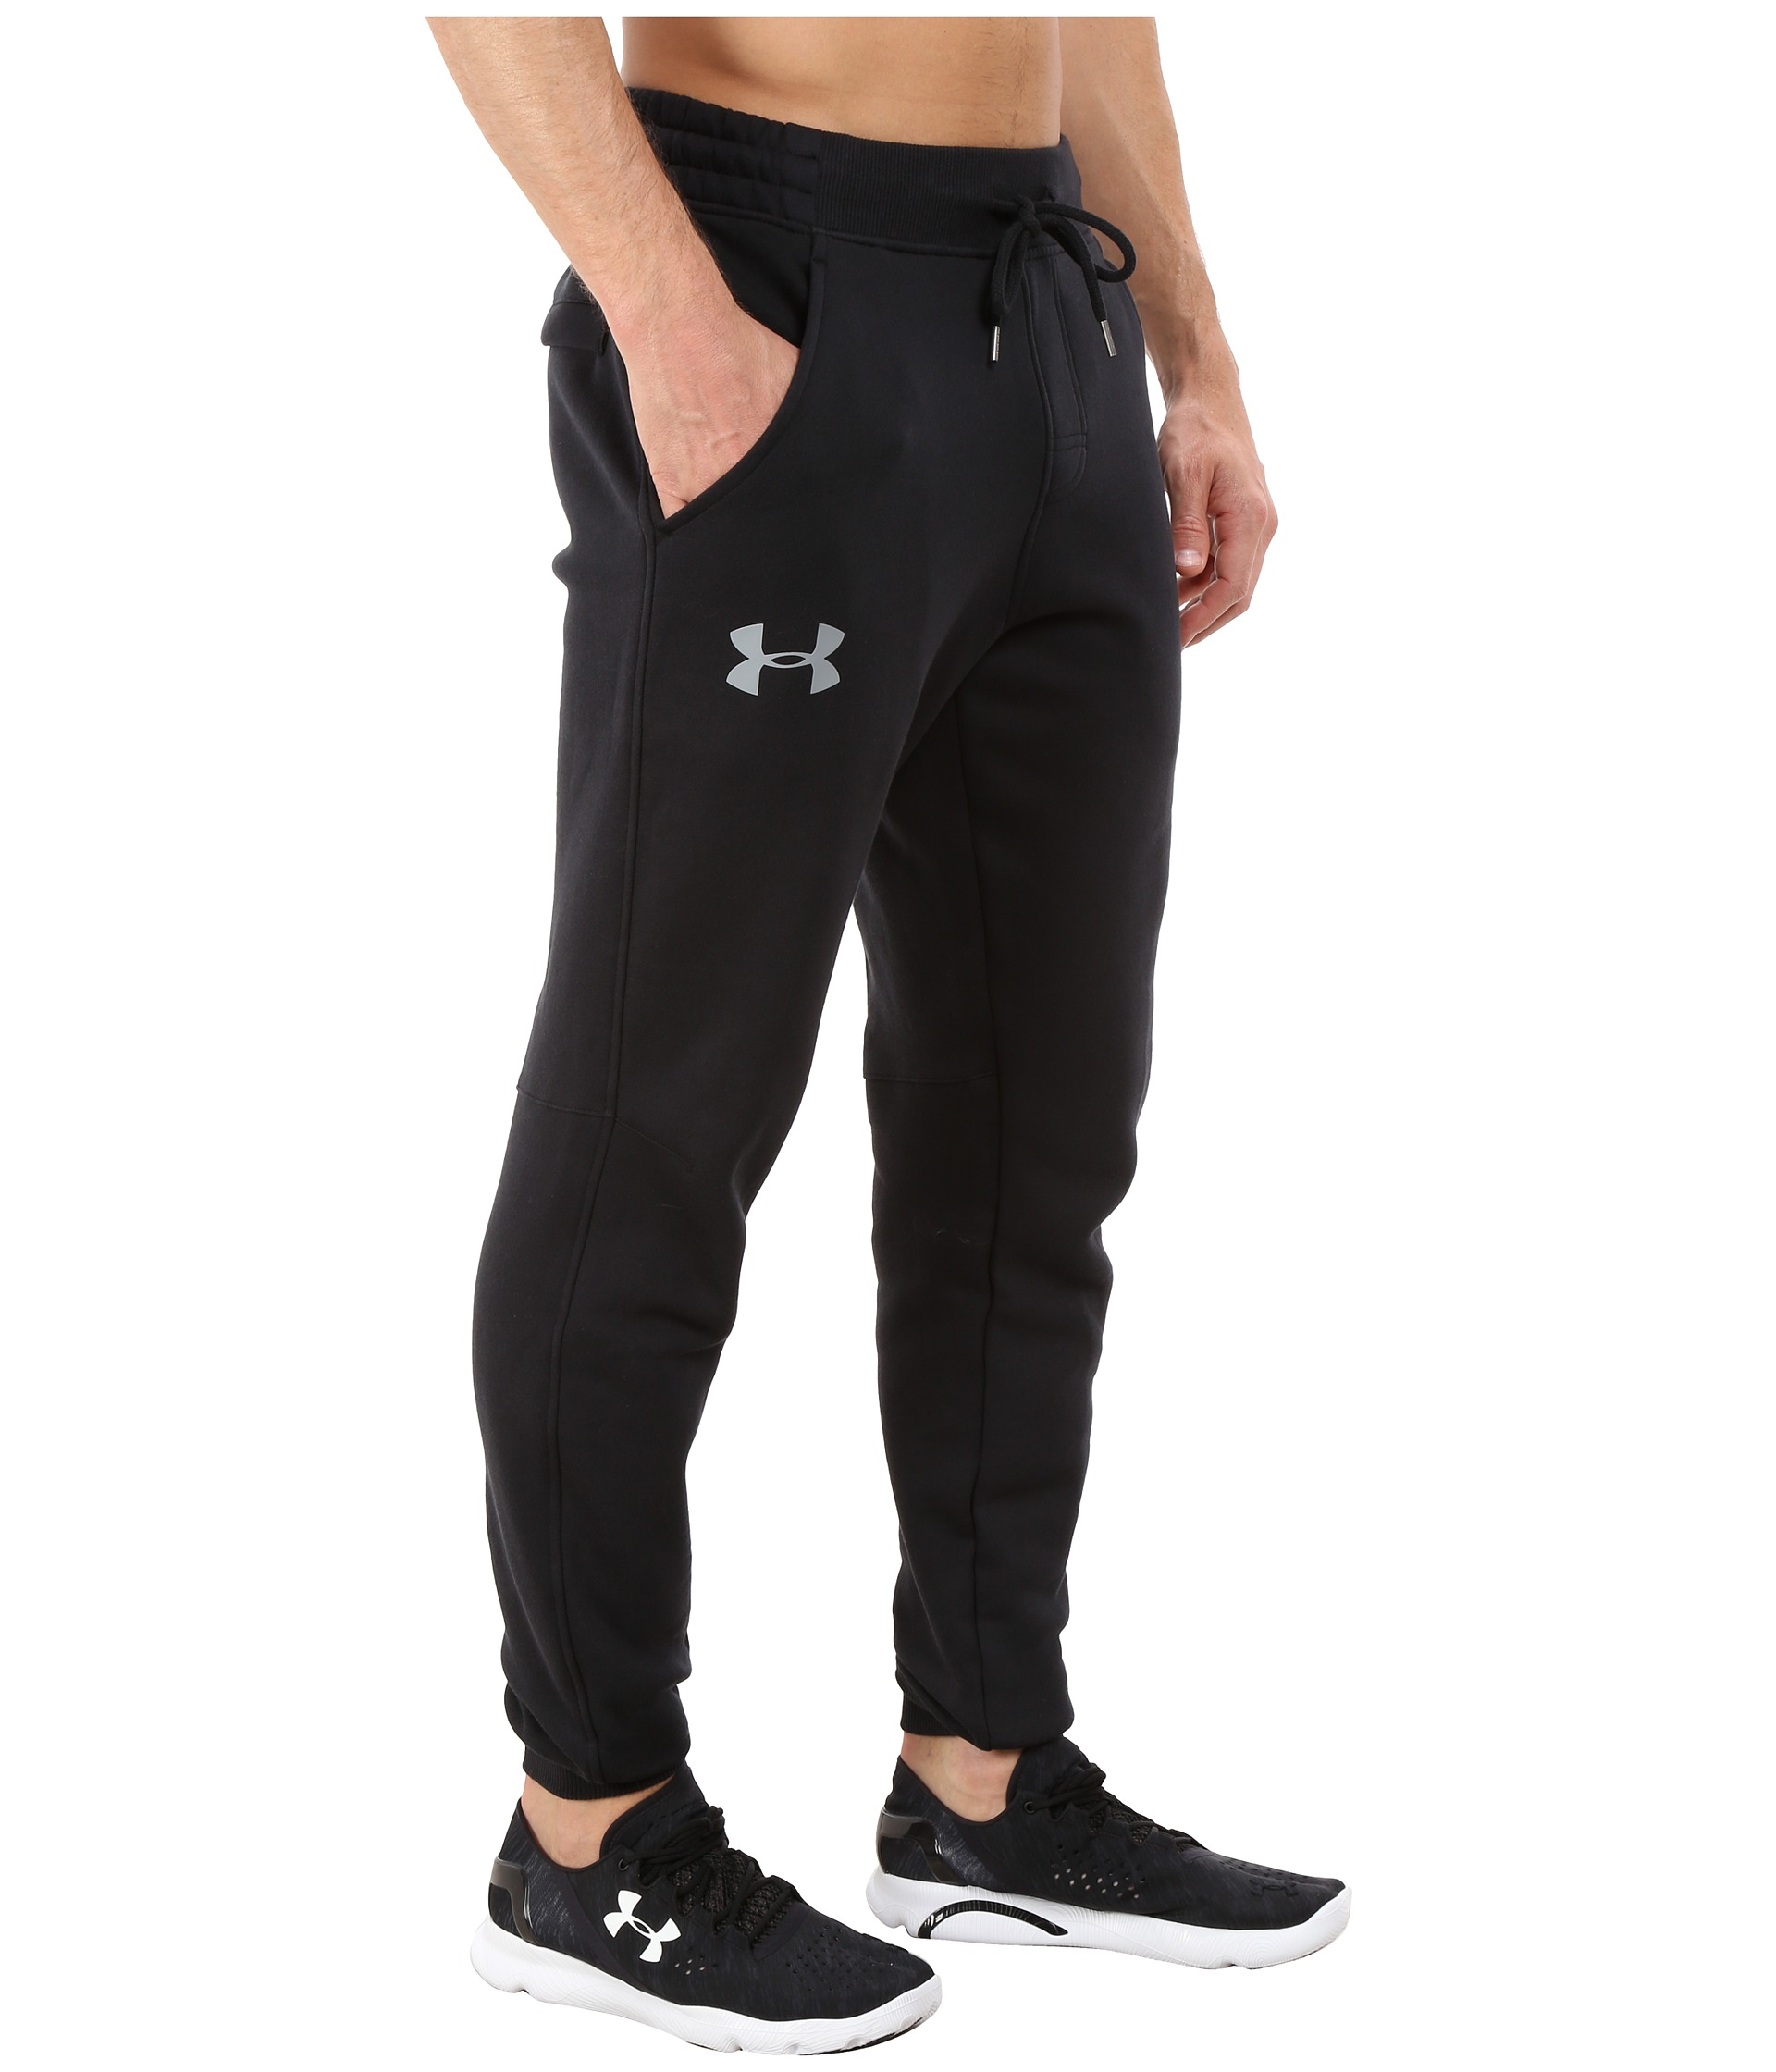 0ea5e6dd6c2b2 under armor cargo pants cheap > OFF44% The Largest Catalog Discounts